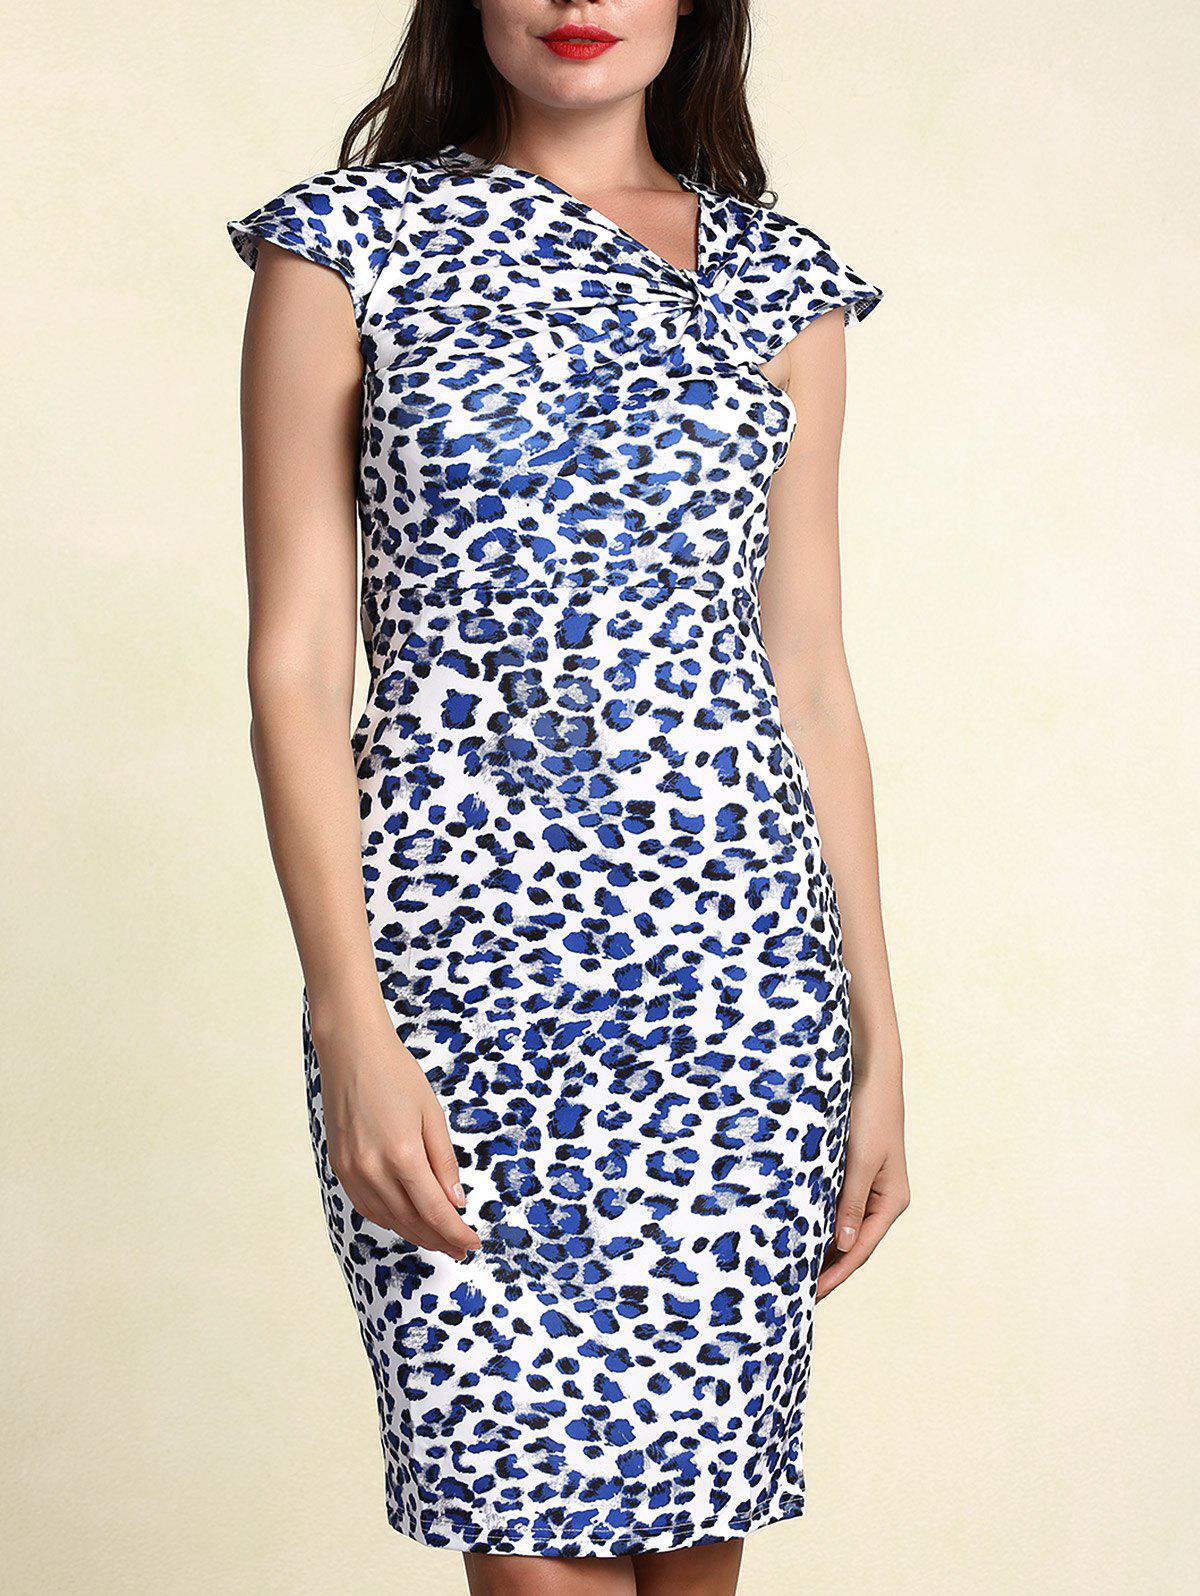 Stylish Women's Skew Collar Short Sleeve Leopard Dress - BLUE 2XL